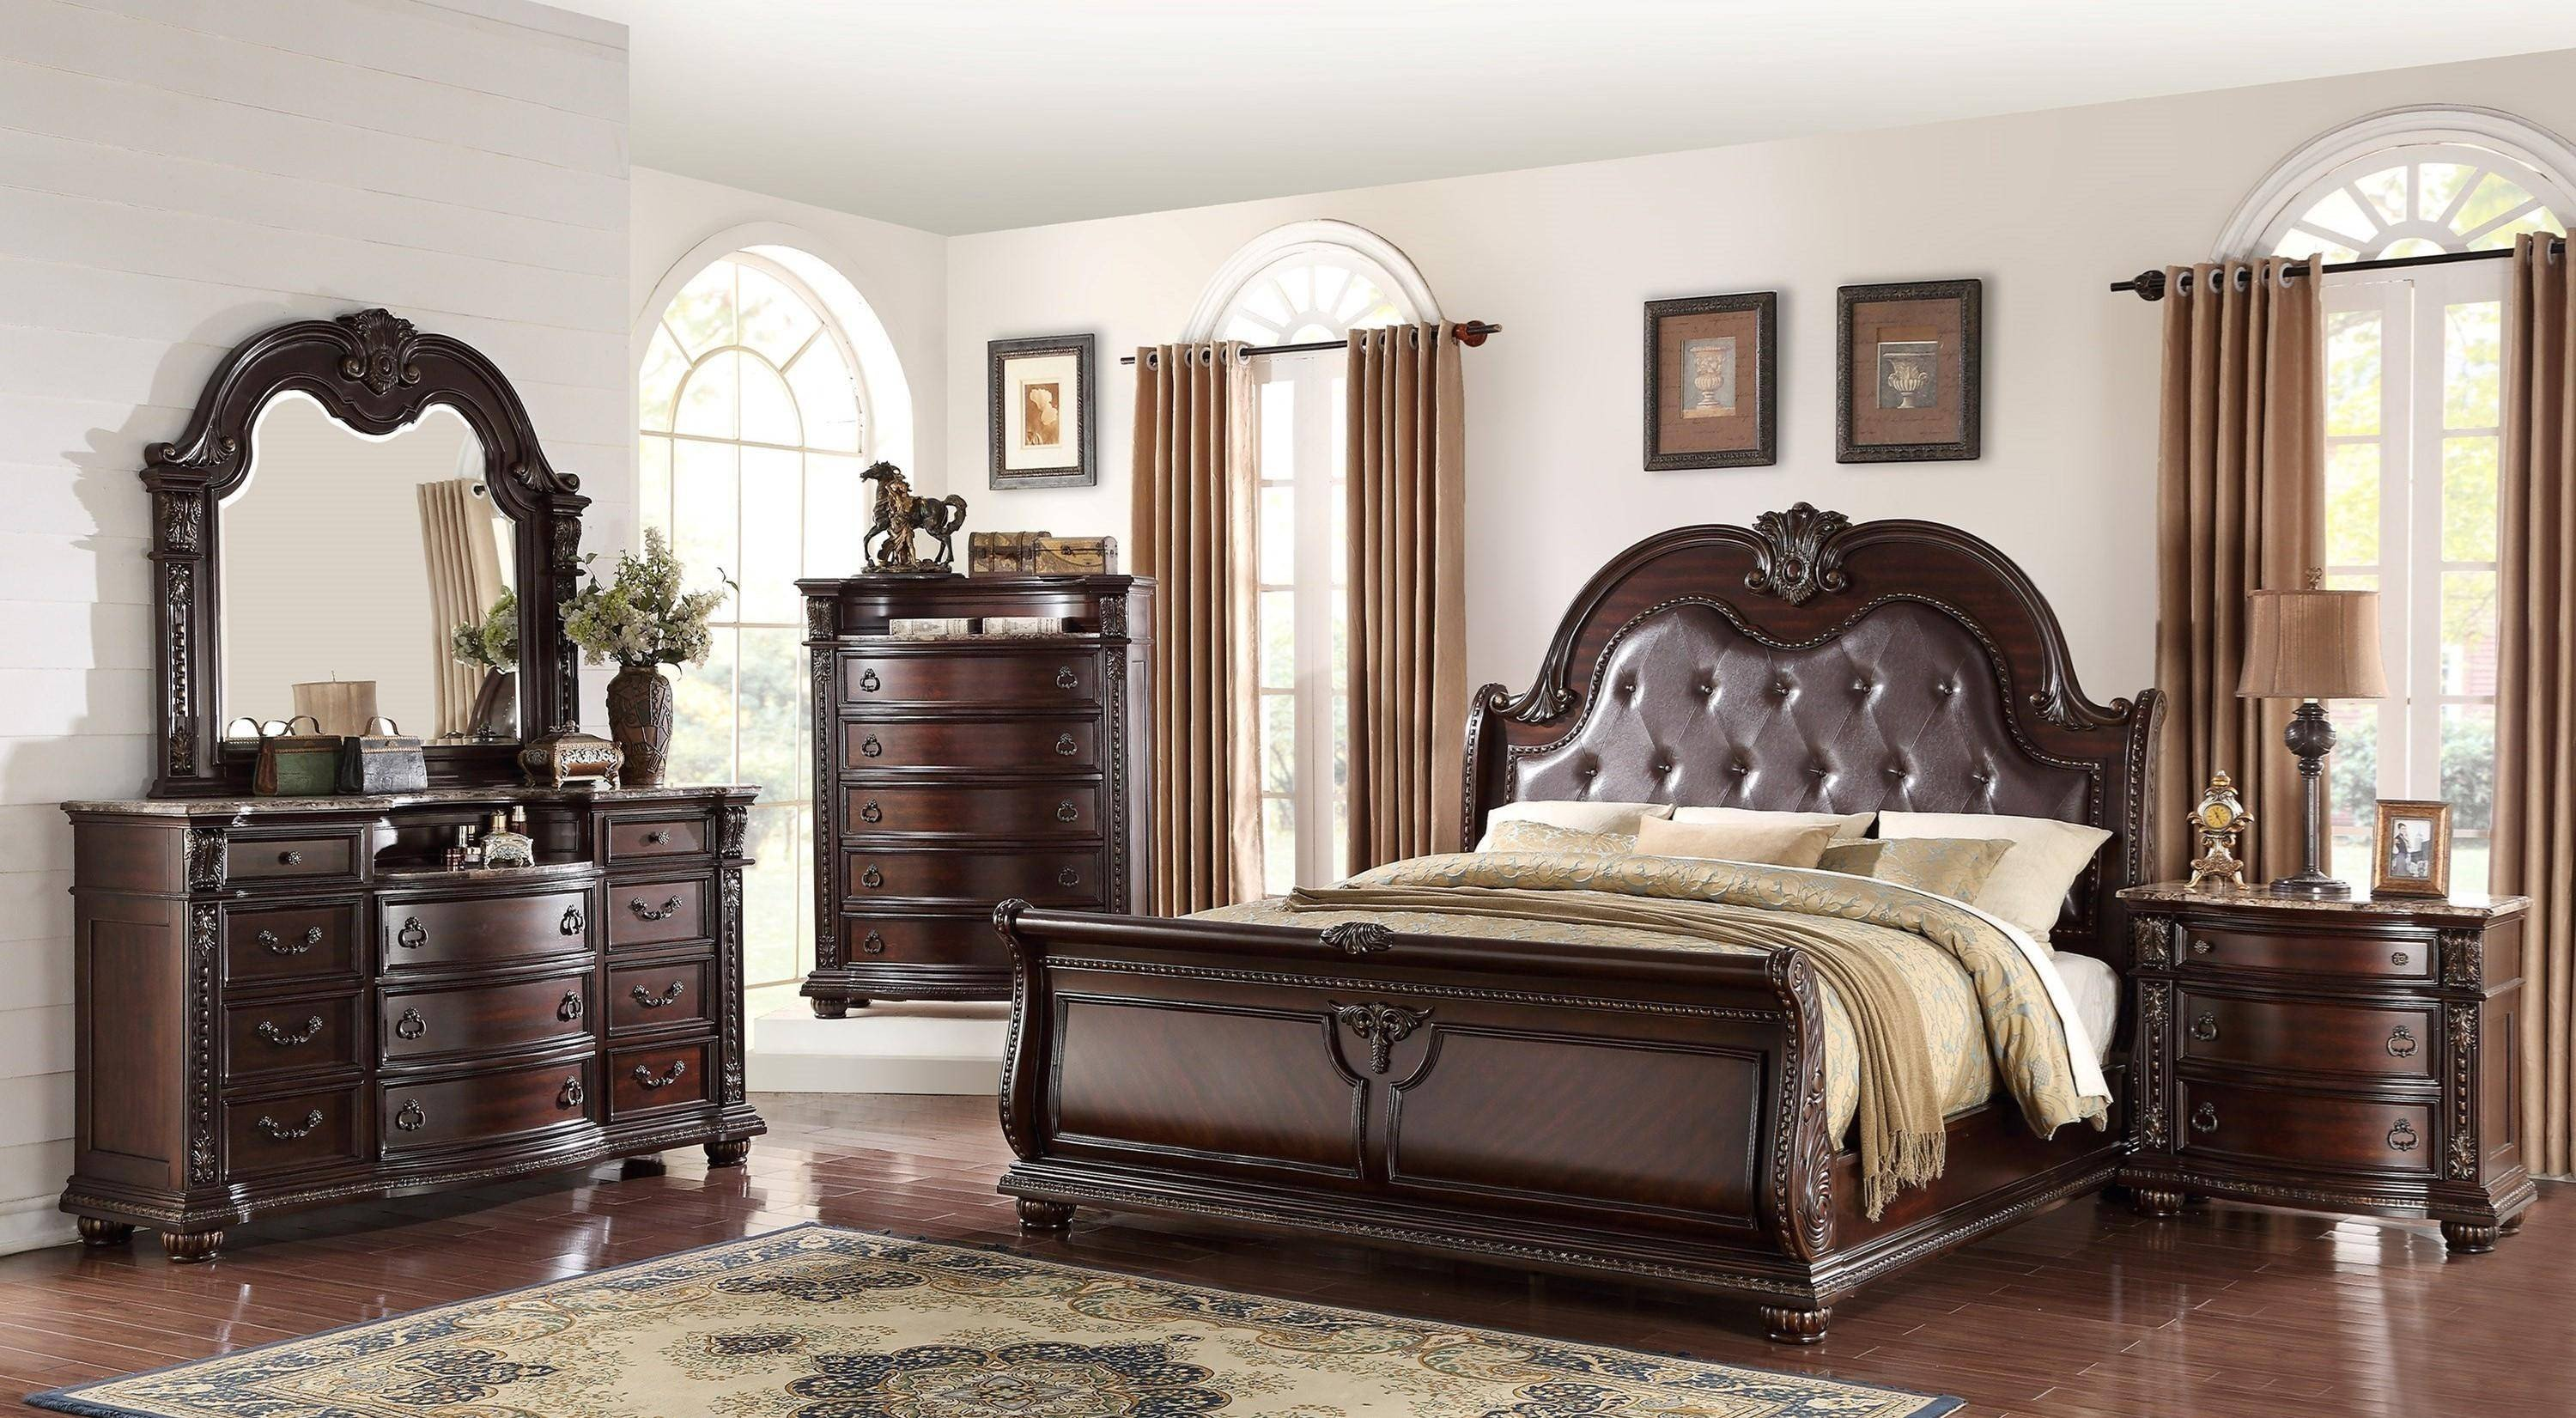 7 Piece Bedroom Set King Awesome Crown Mark B1600 Stanley Cherry Finish solid Wood King